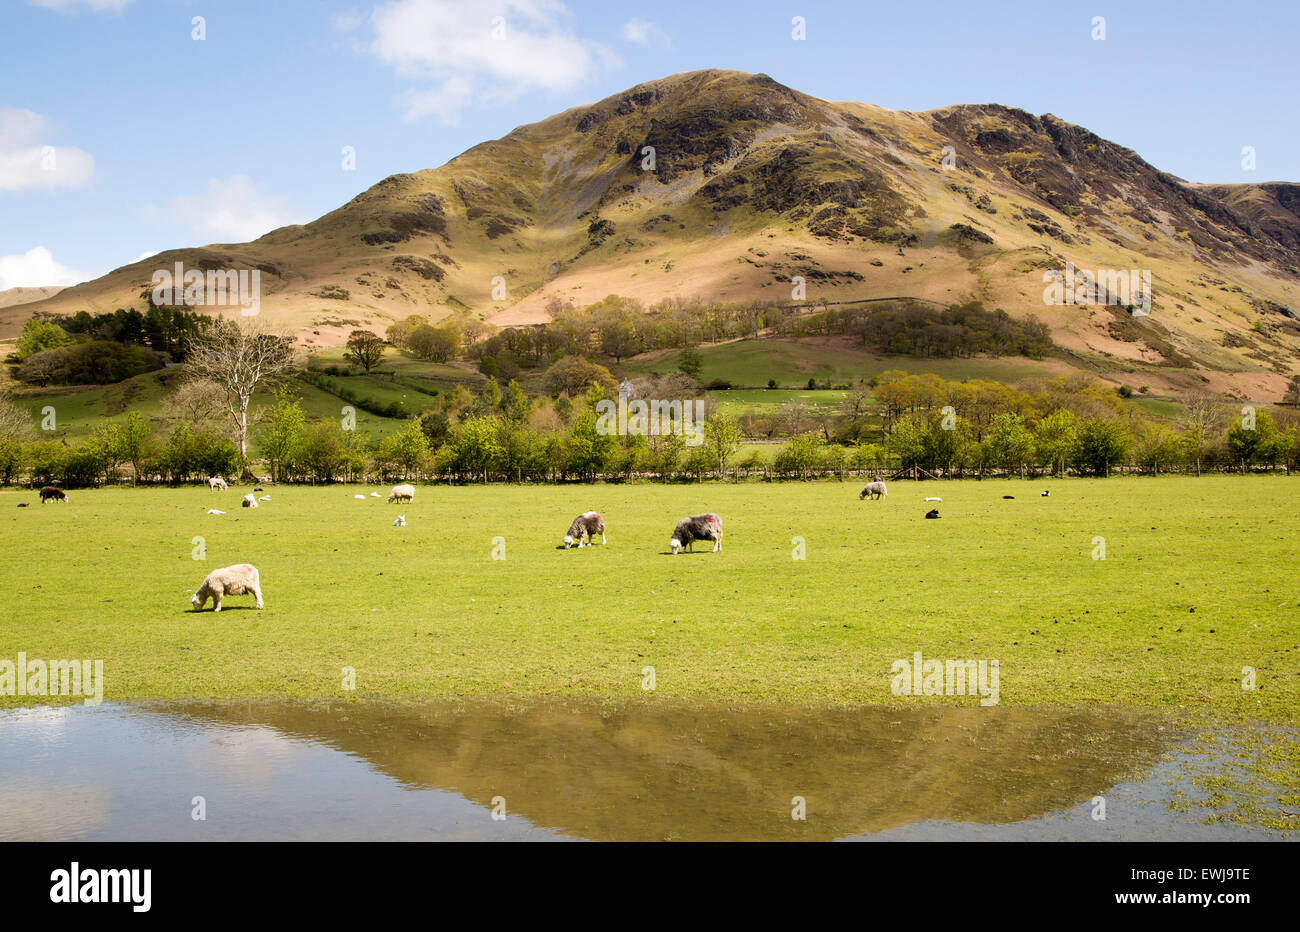 Landscape view of High Snockrigg Fell hill and flooded field, Buttermere, Cumbria, England, UK - Stock Image